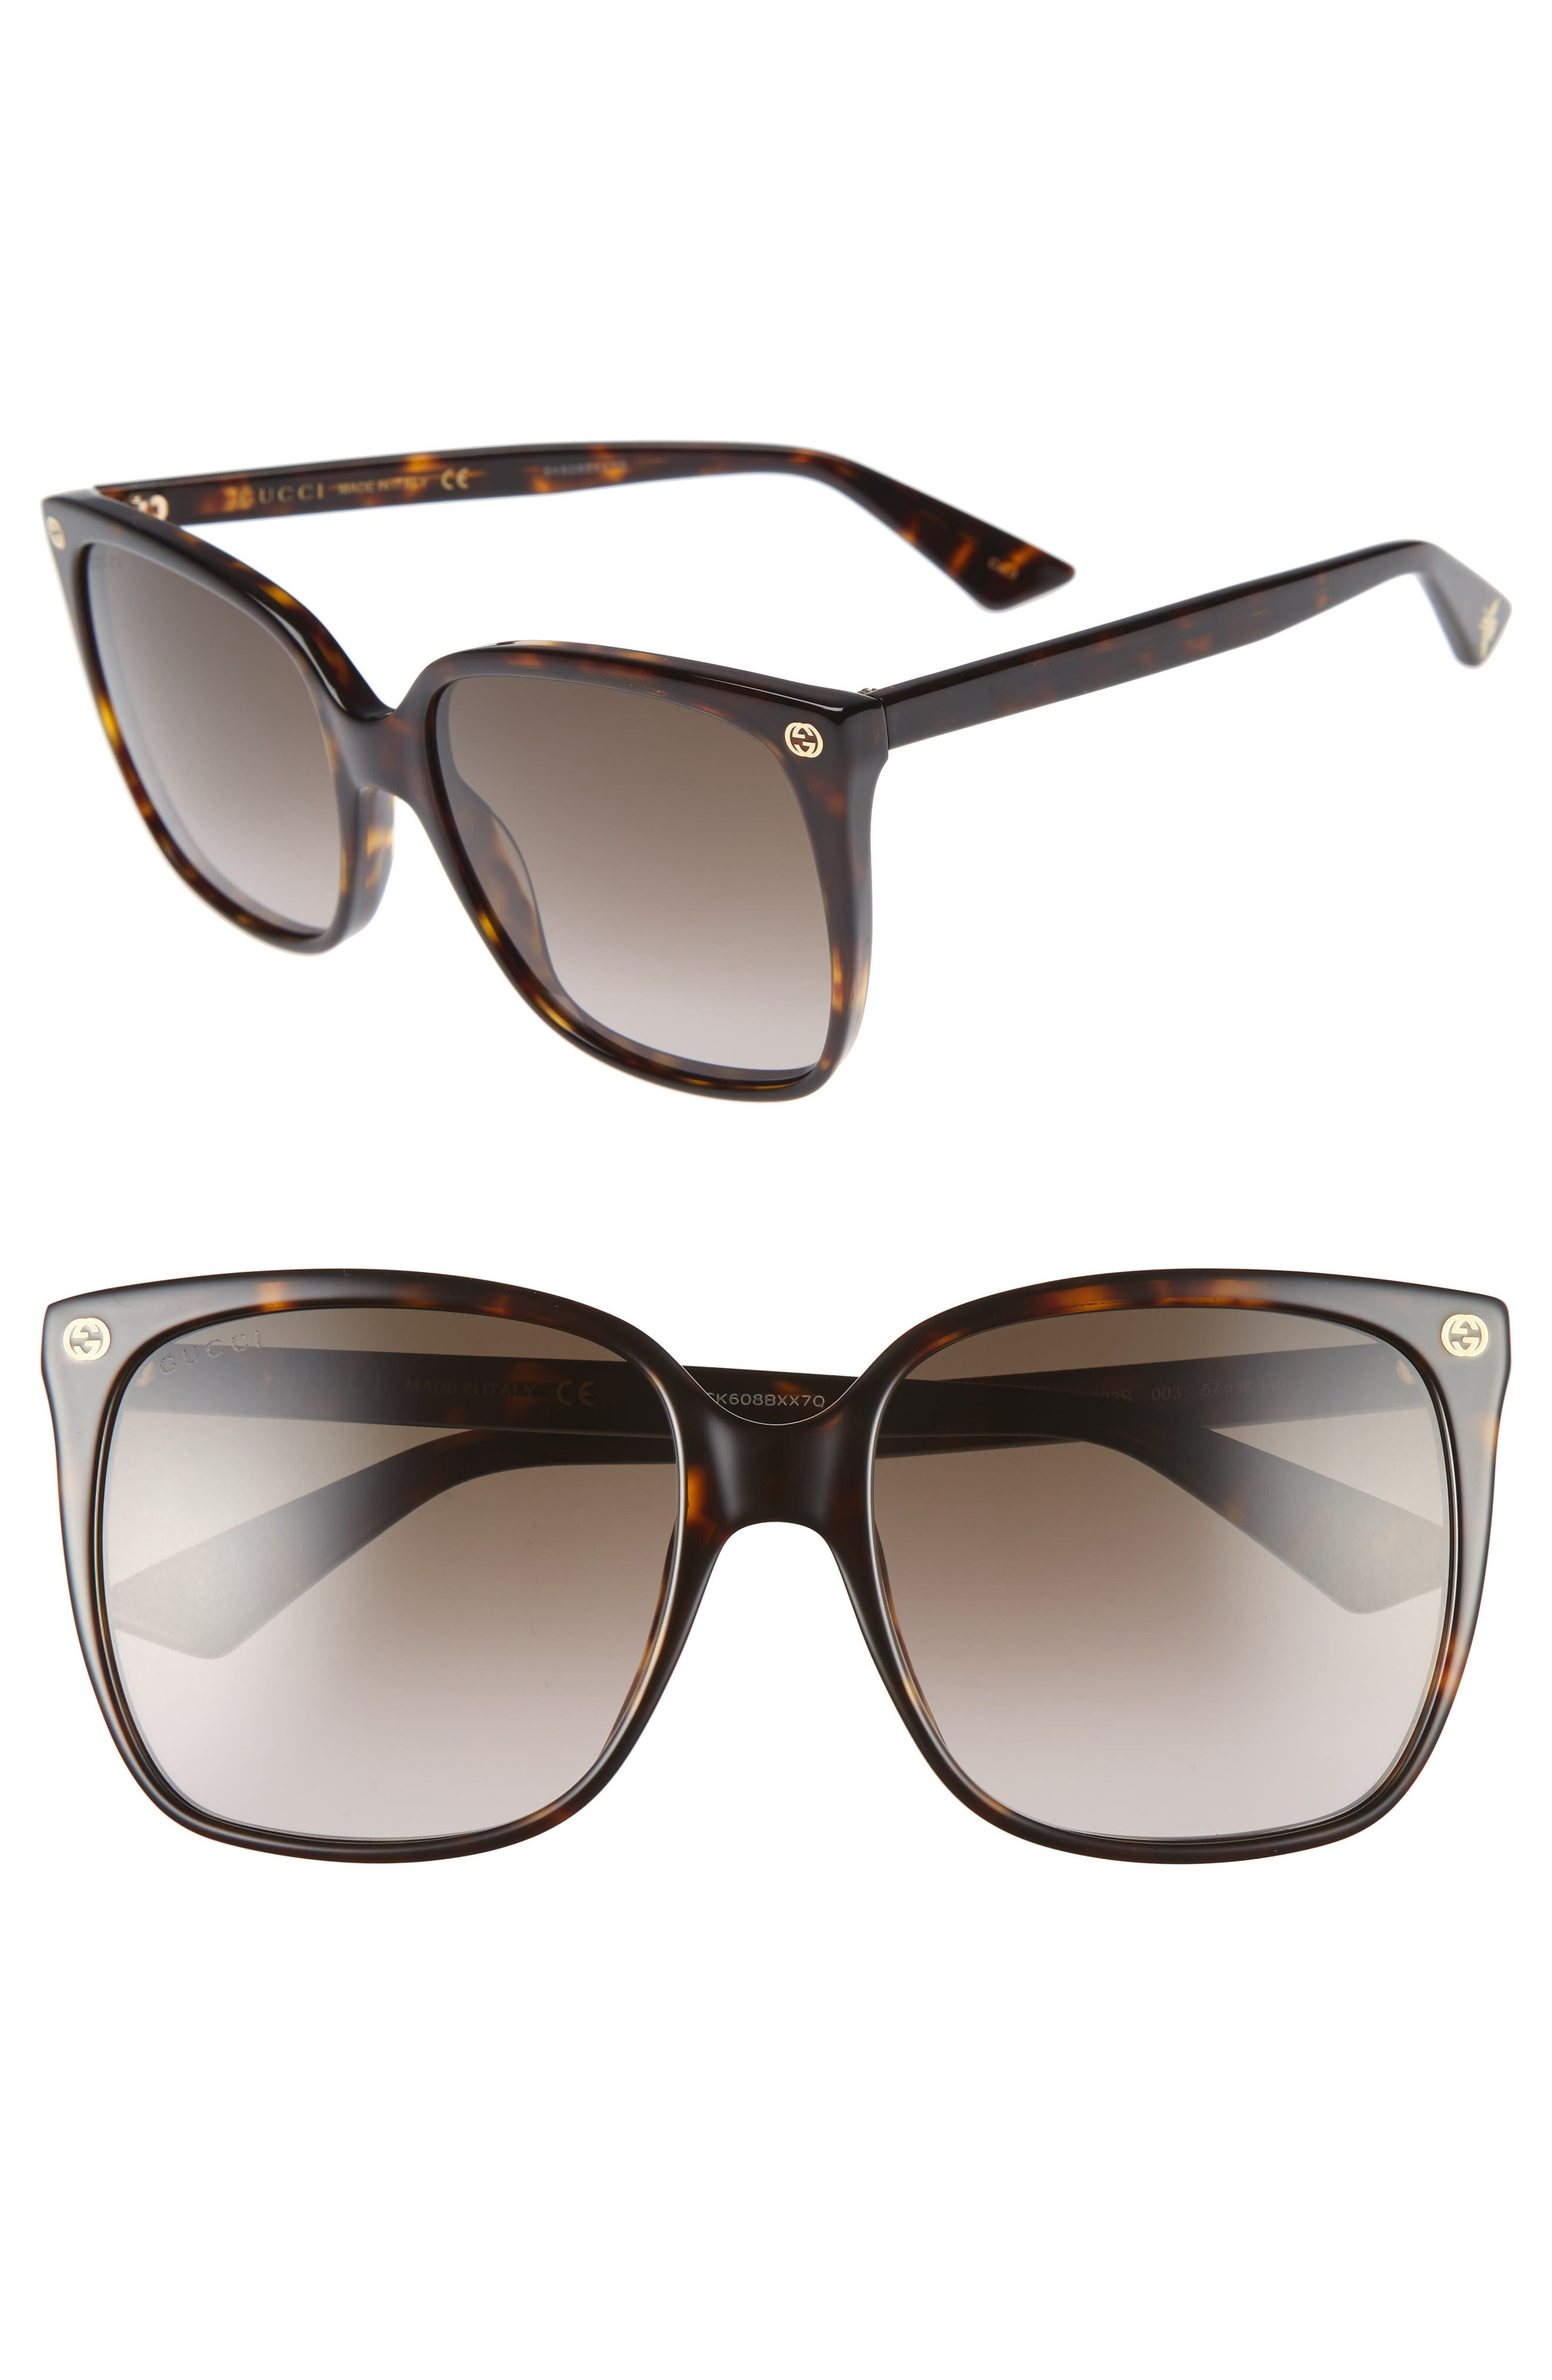 Alternate Image 1 Selected - Gucci 57mm Square Sunglasses